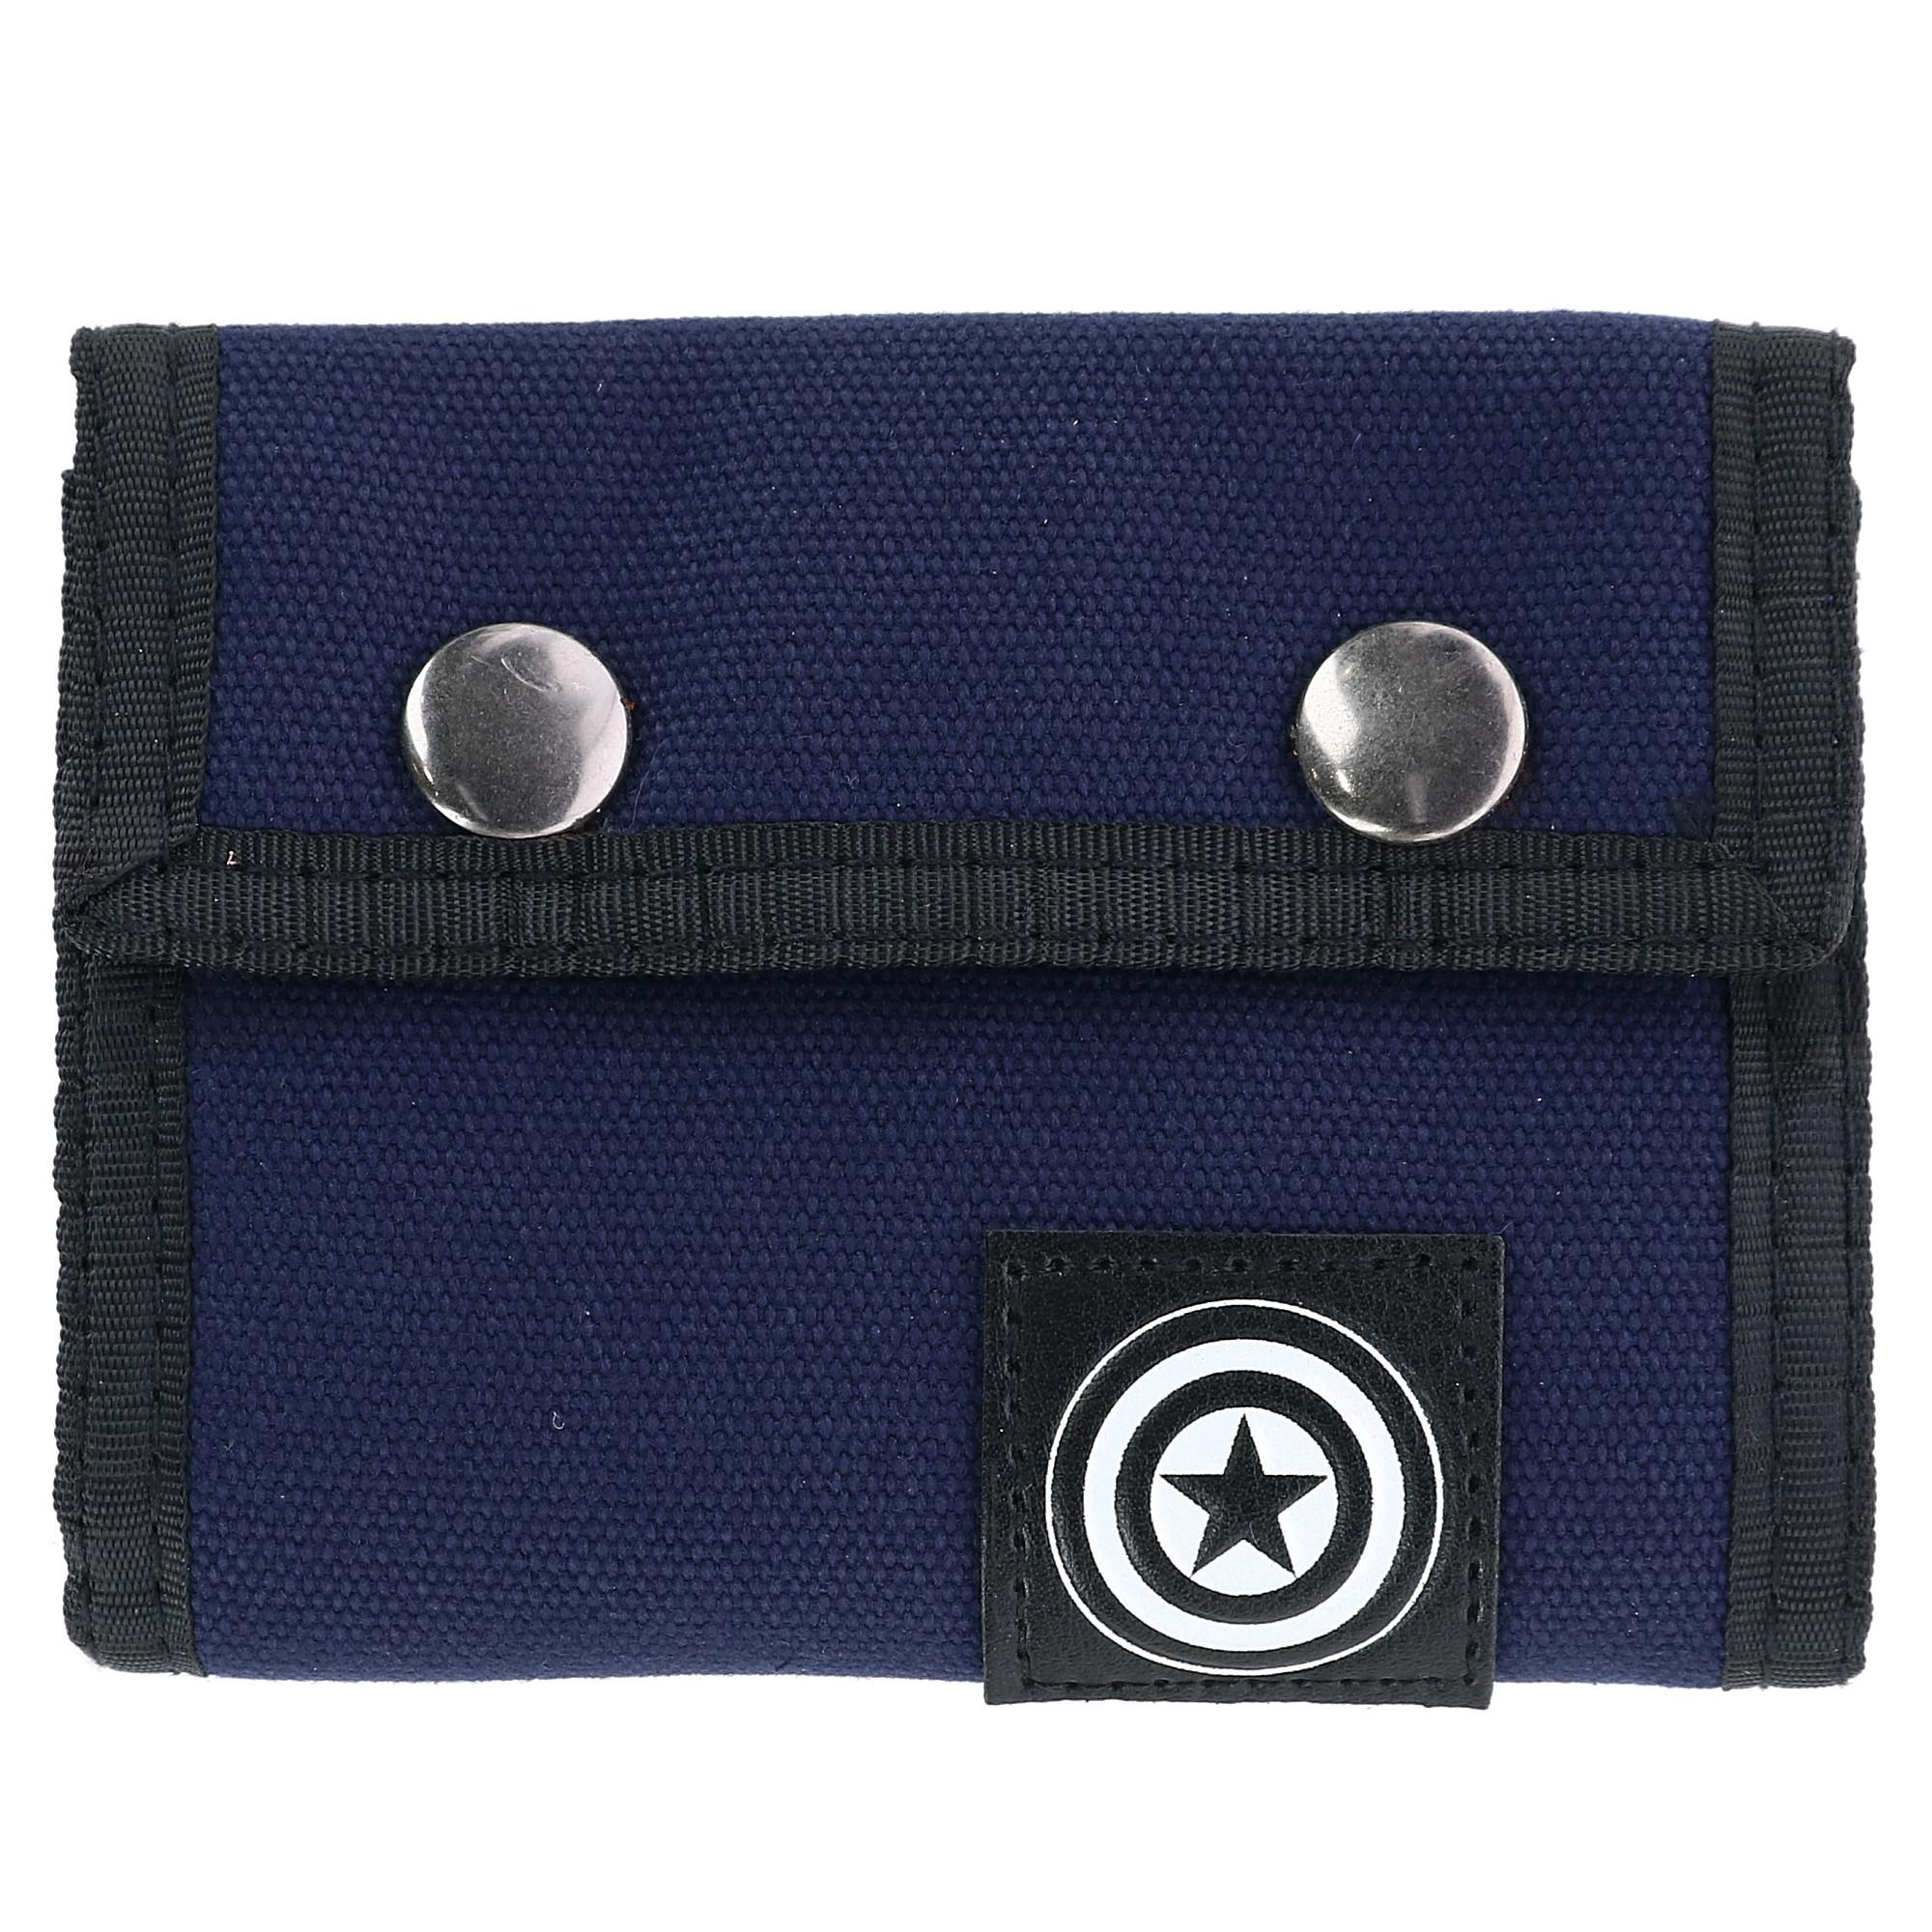 Marvel Captain America Tri-Fold Wallet - image 3 of 3